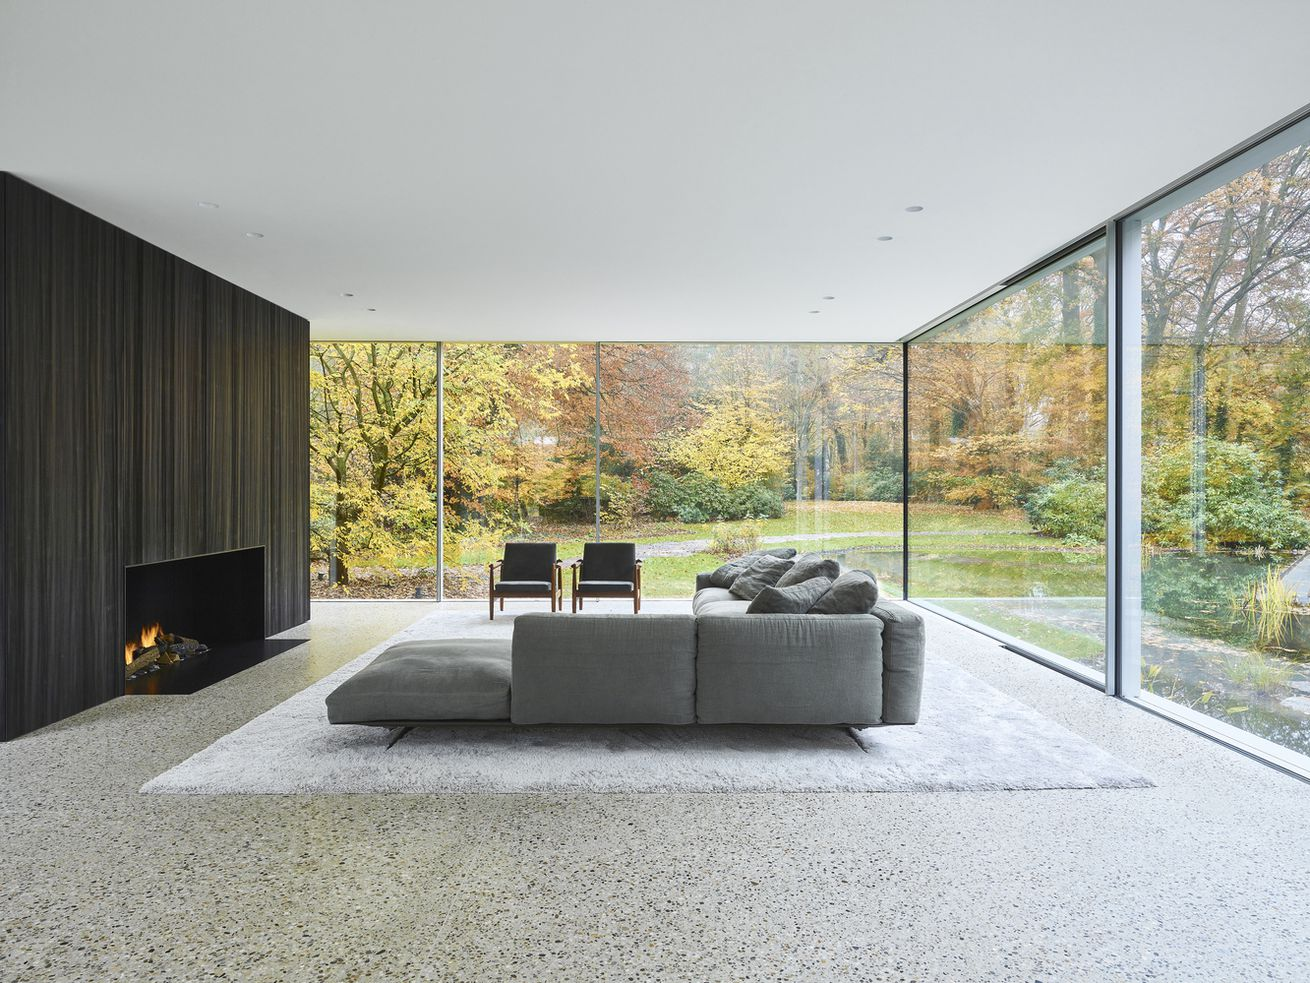 Living room with neutral colors and large windows showing trees going through foliage.